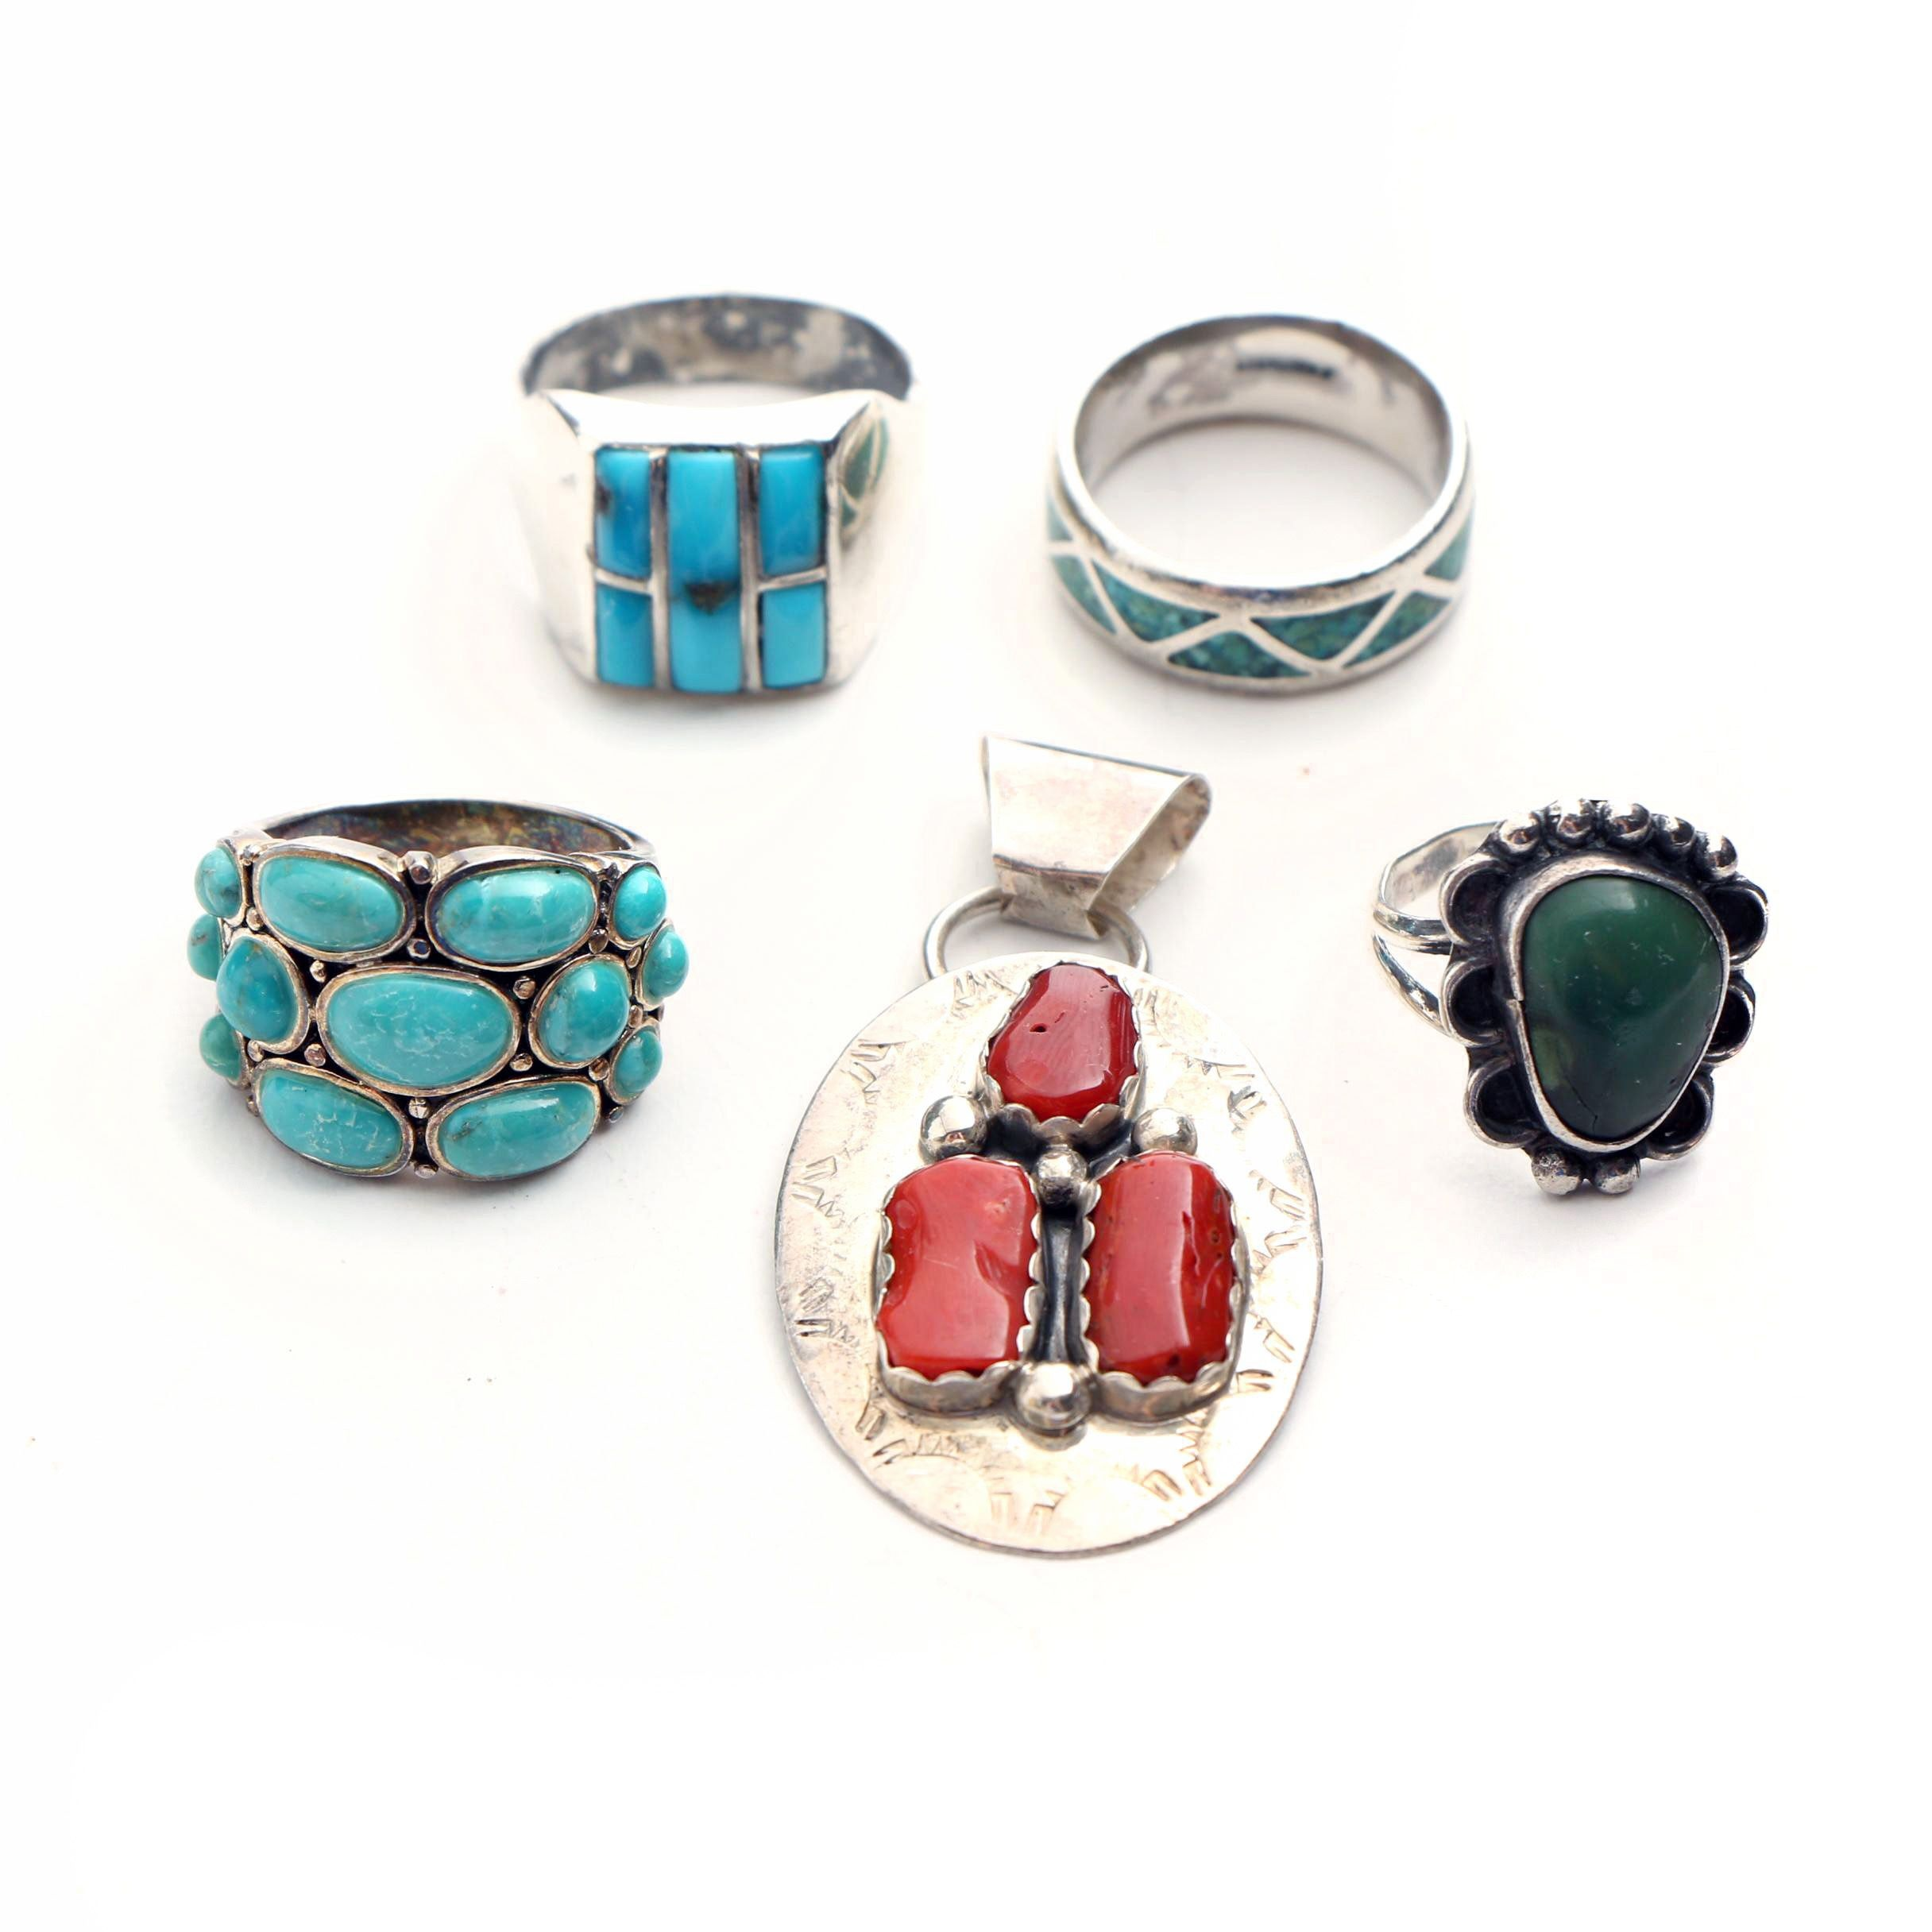 Navajo, Zuni, and Southwestern Style Sterling Silver Turquoise and Coral Jewelry